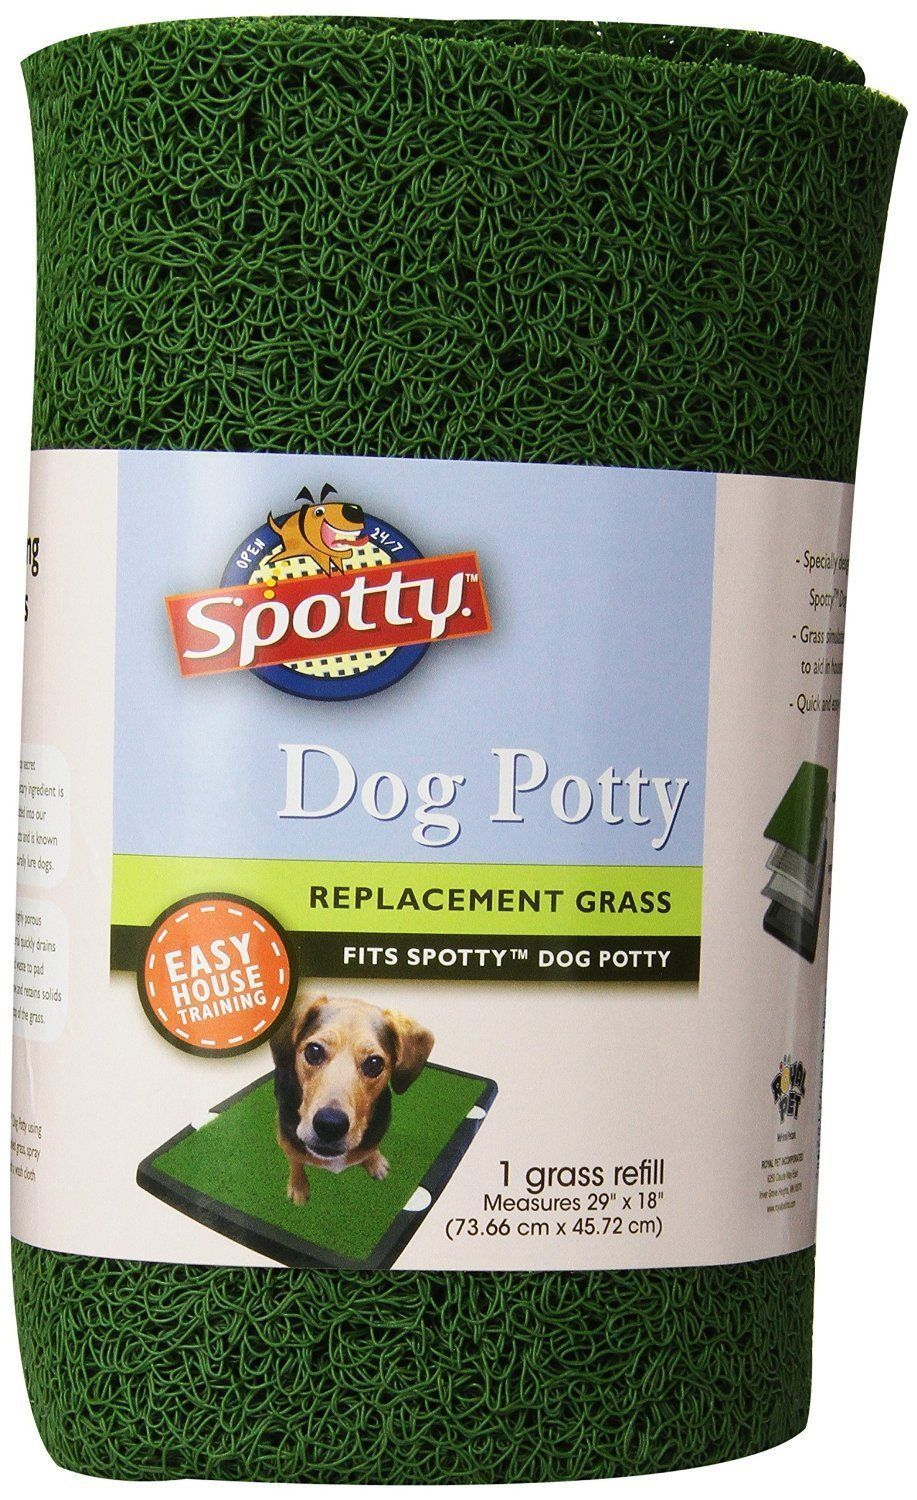 Spotty Indoor Dog Potty Replacement Grass Is Made Of Pvc Which